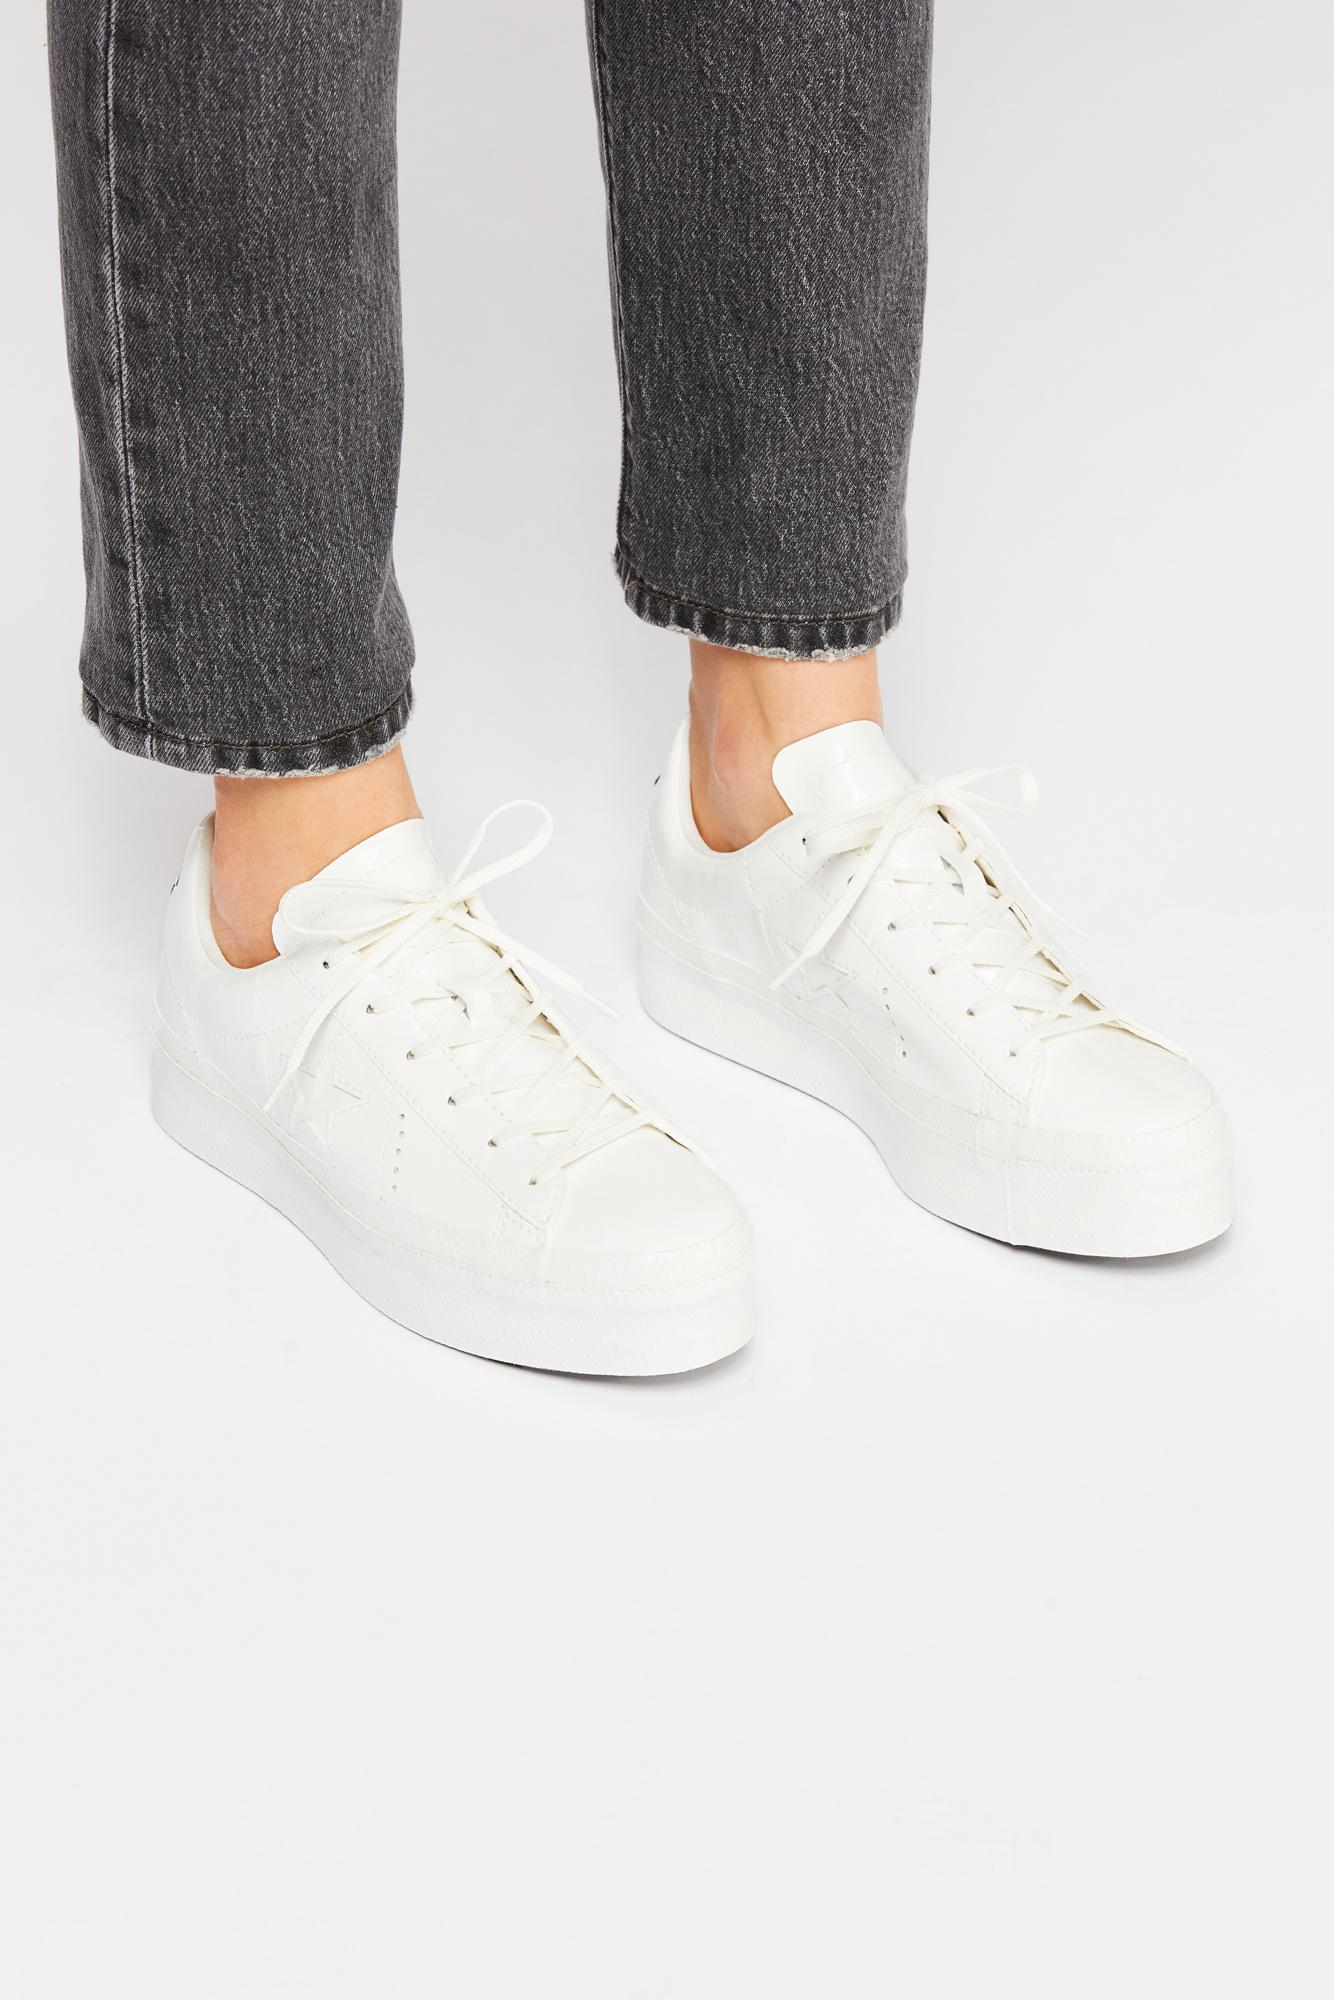 afbe44650d4 Free People One Star Patent Platform Sneaker By Converse in White - Lyst